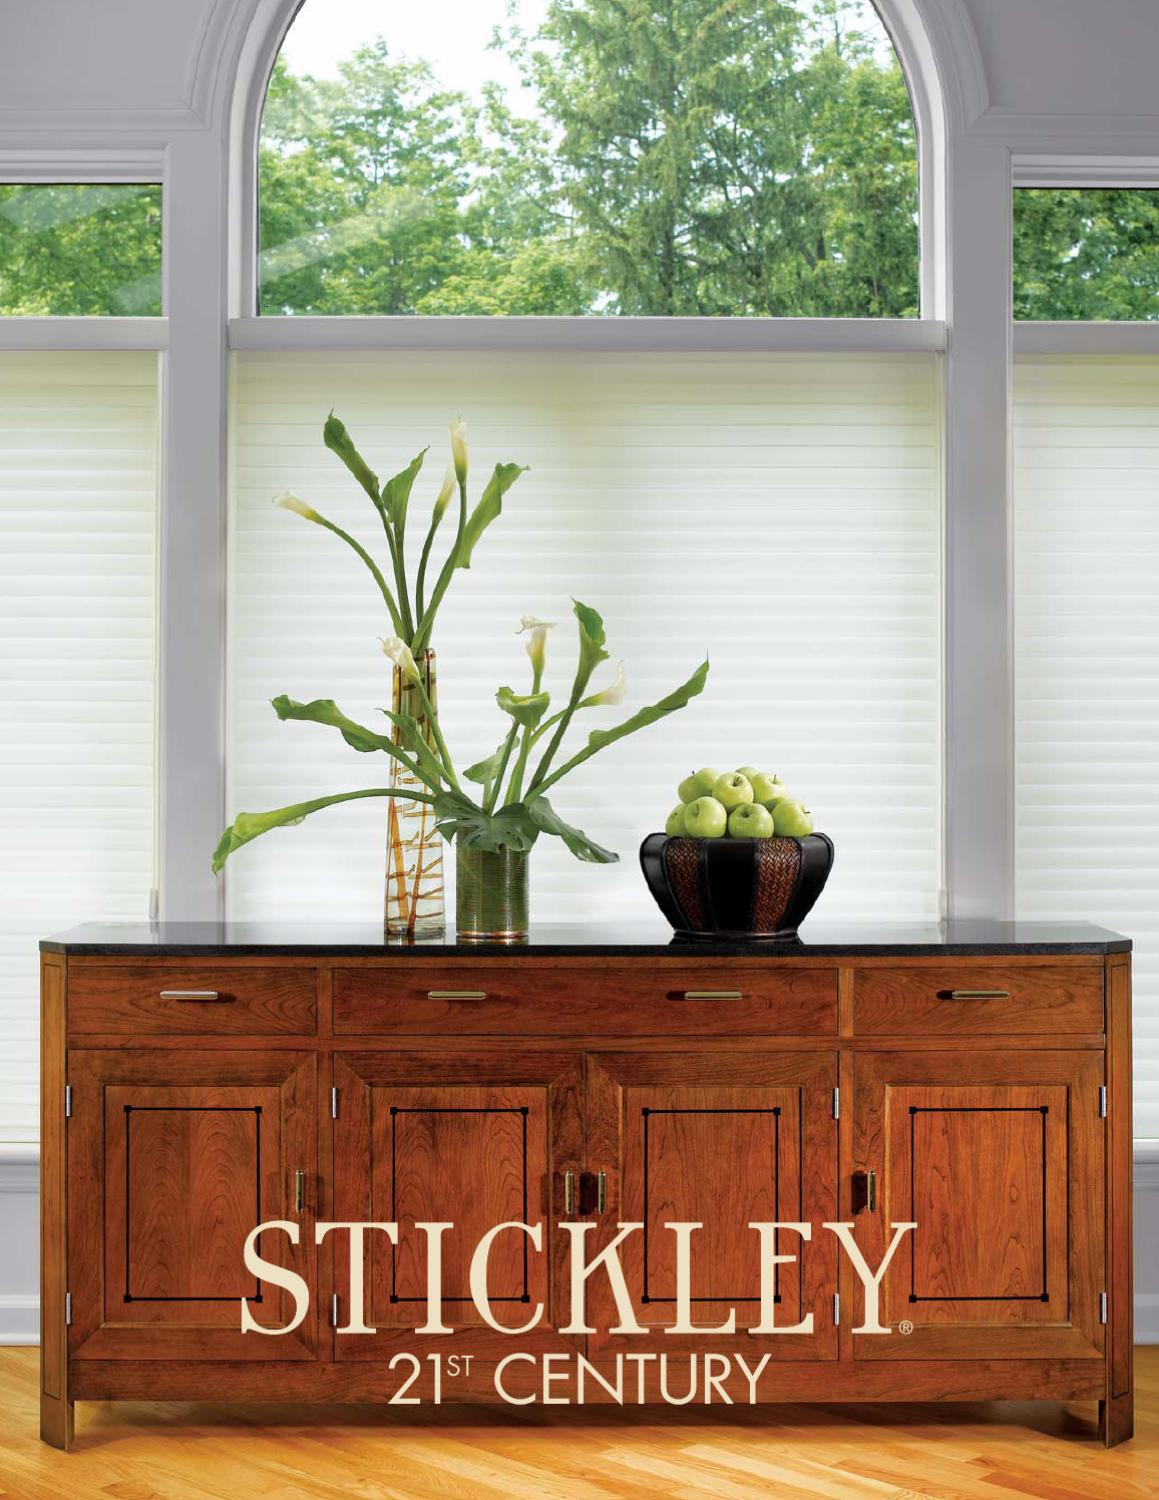 stickley 21st century collection by stickley issuu